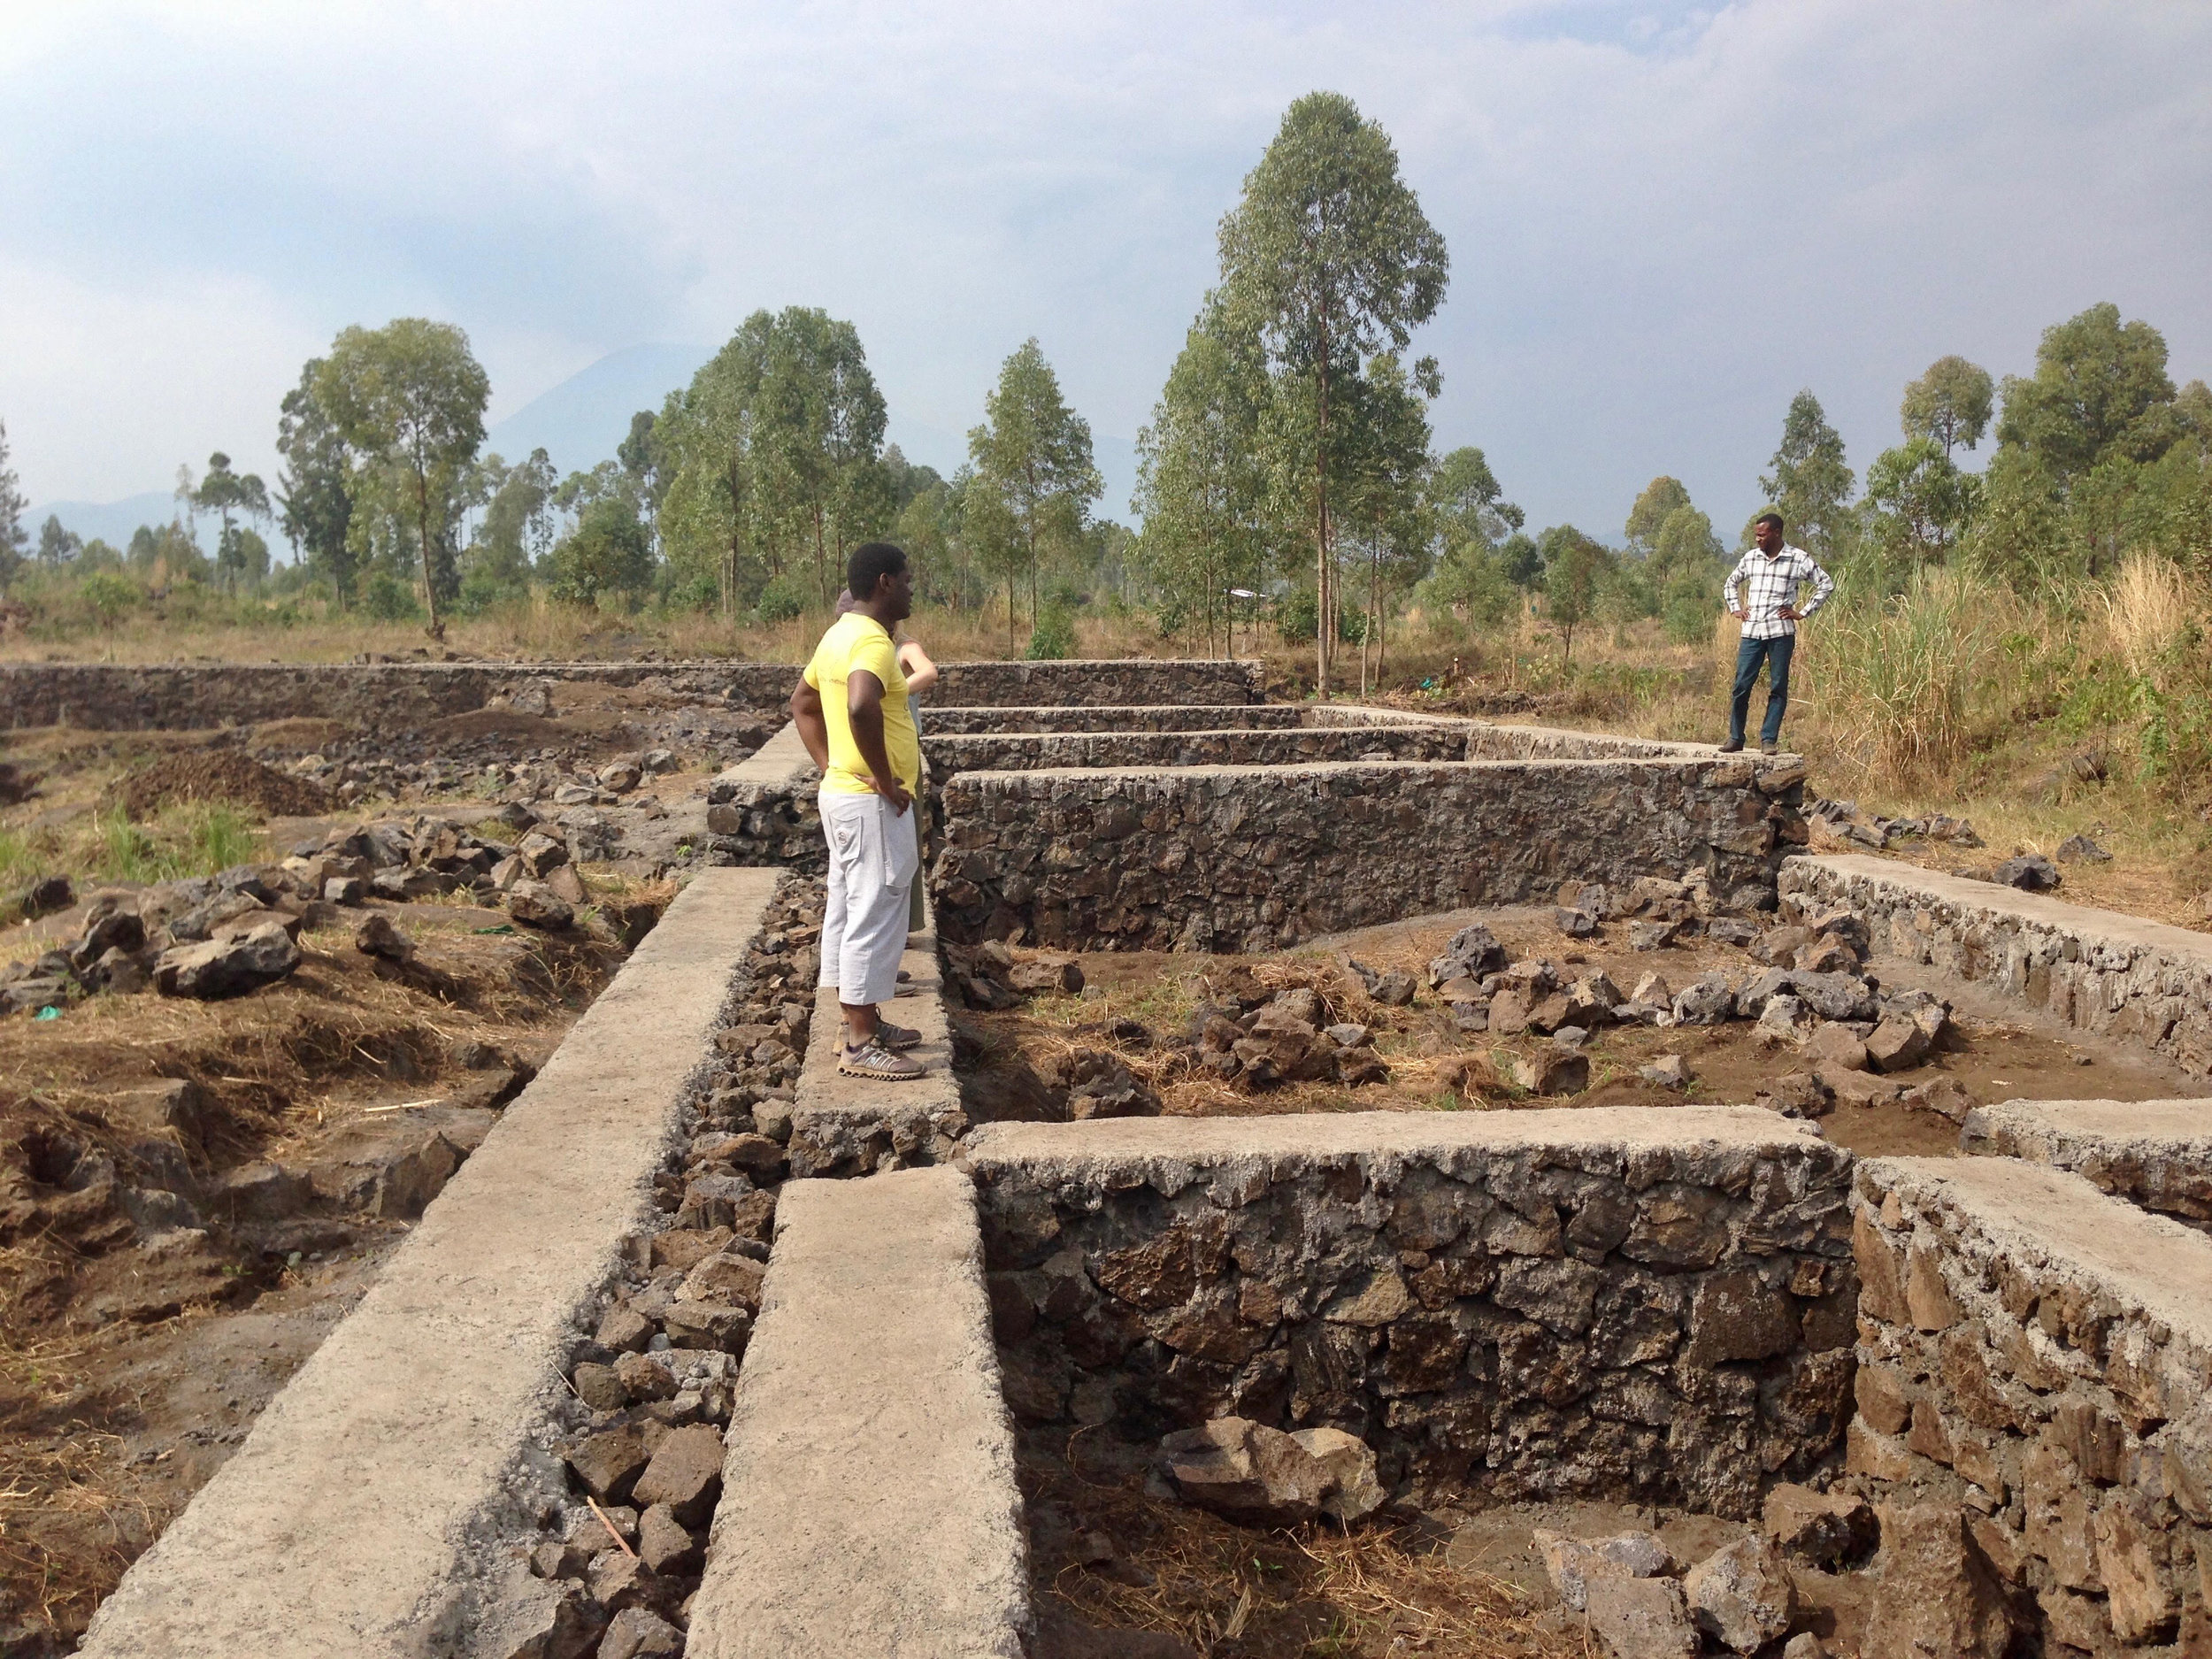 Before: Foundation for Mwamini's school